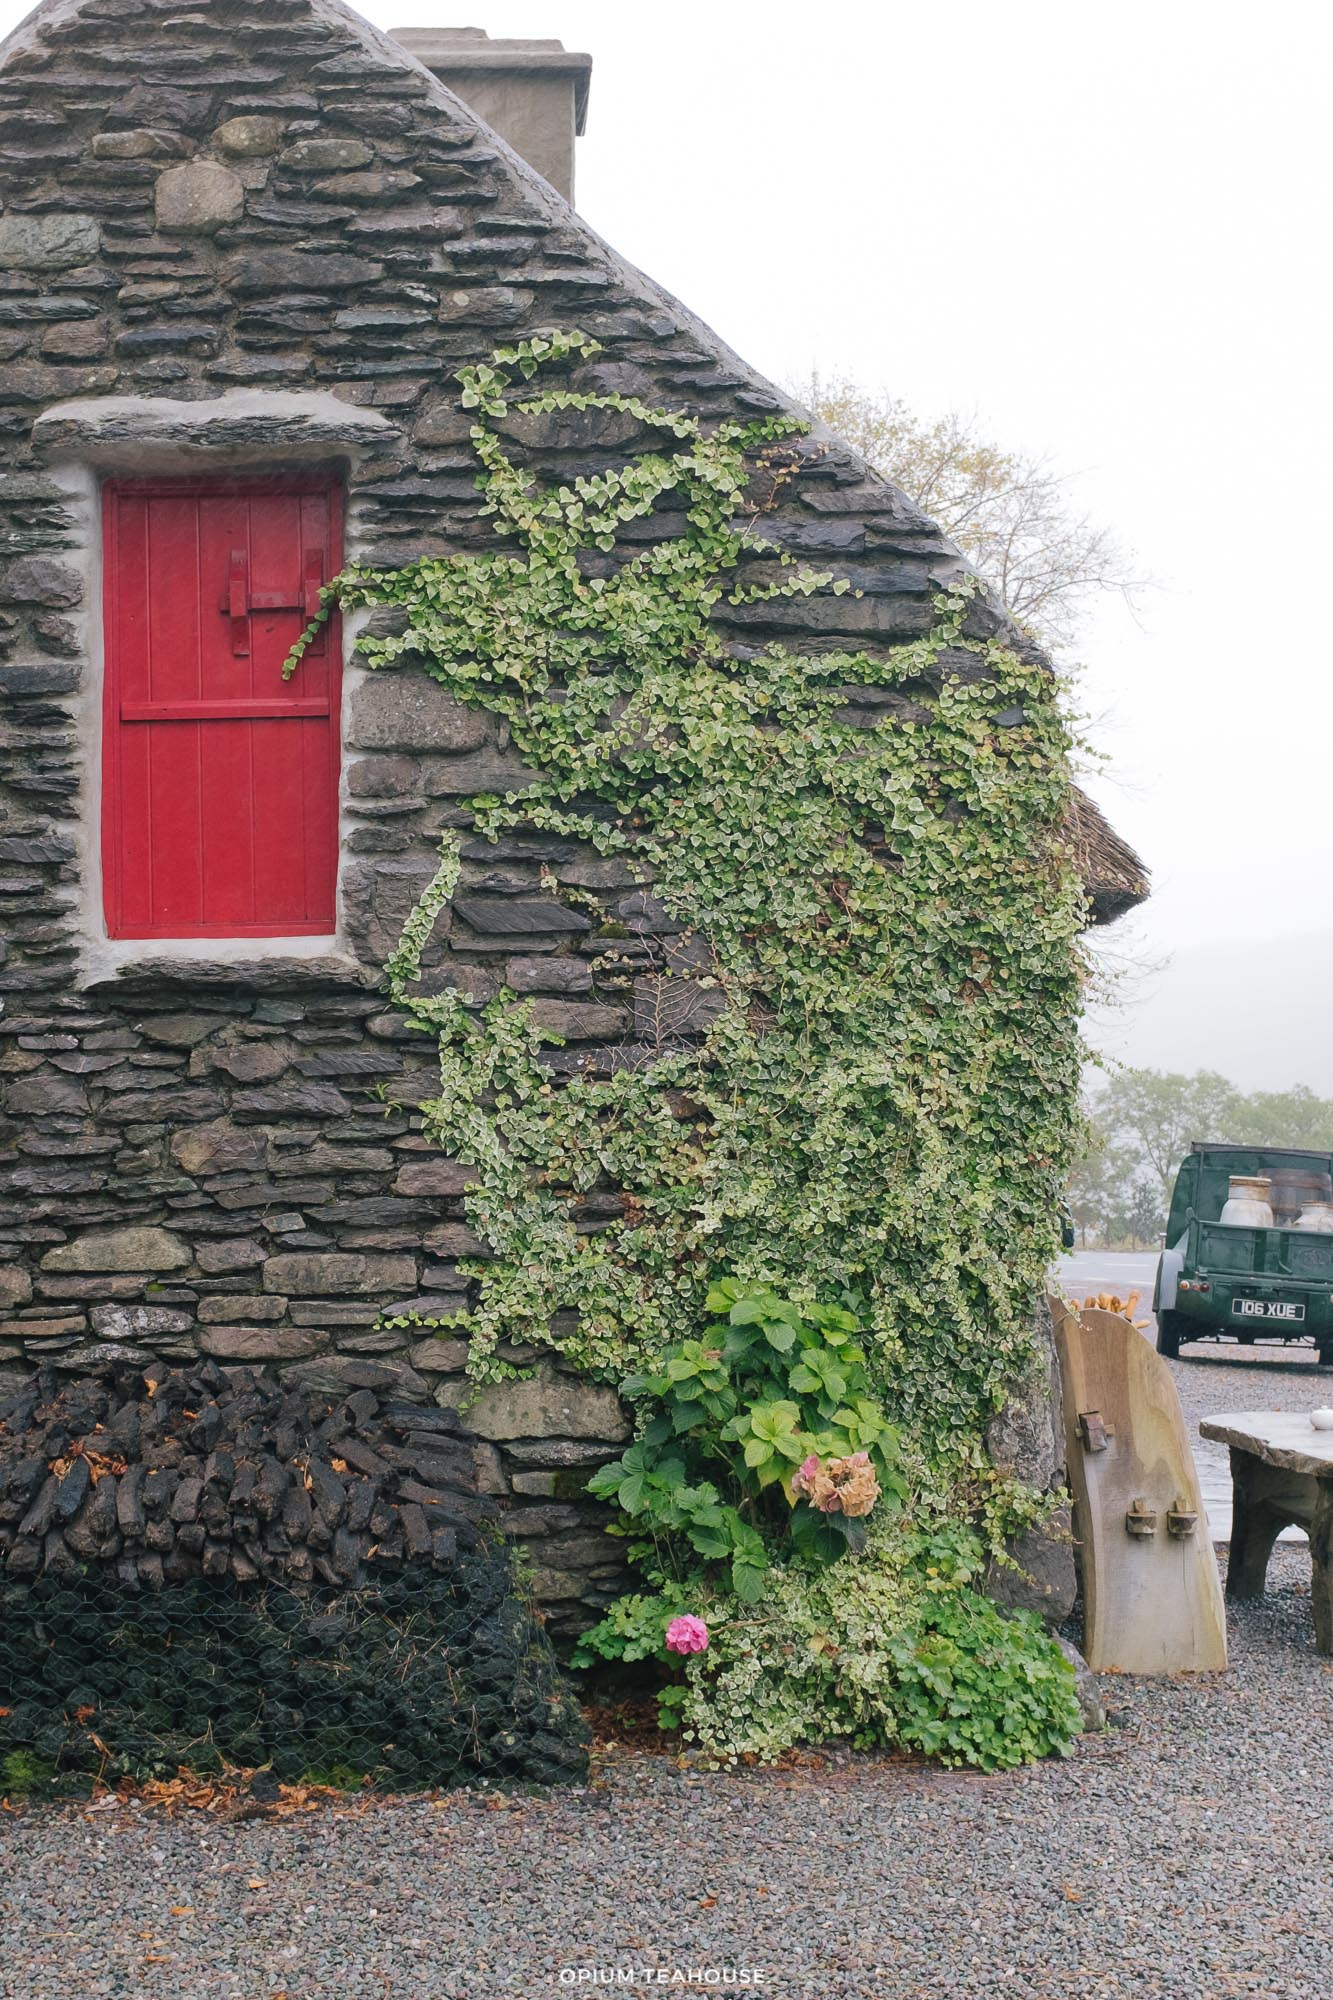 OTH_Ring of Beara Molly Galivan Cottage Ireland.jpg